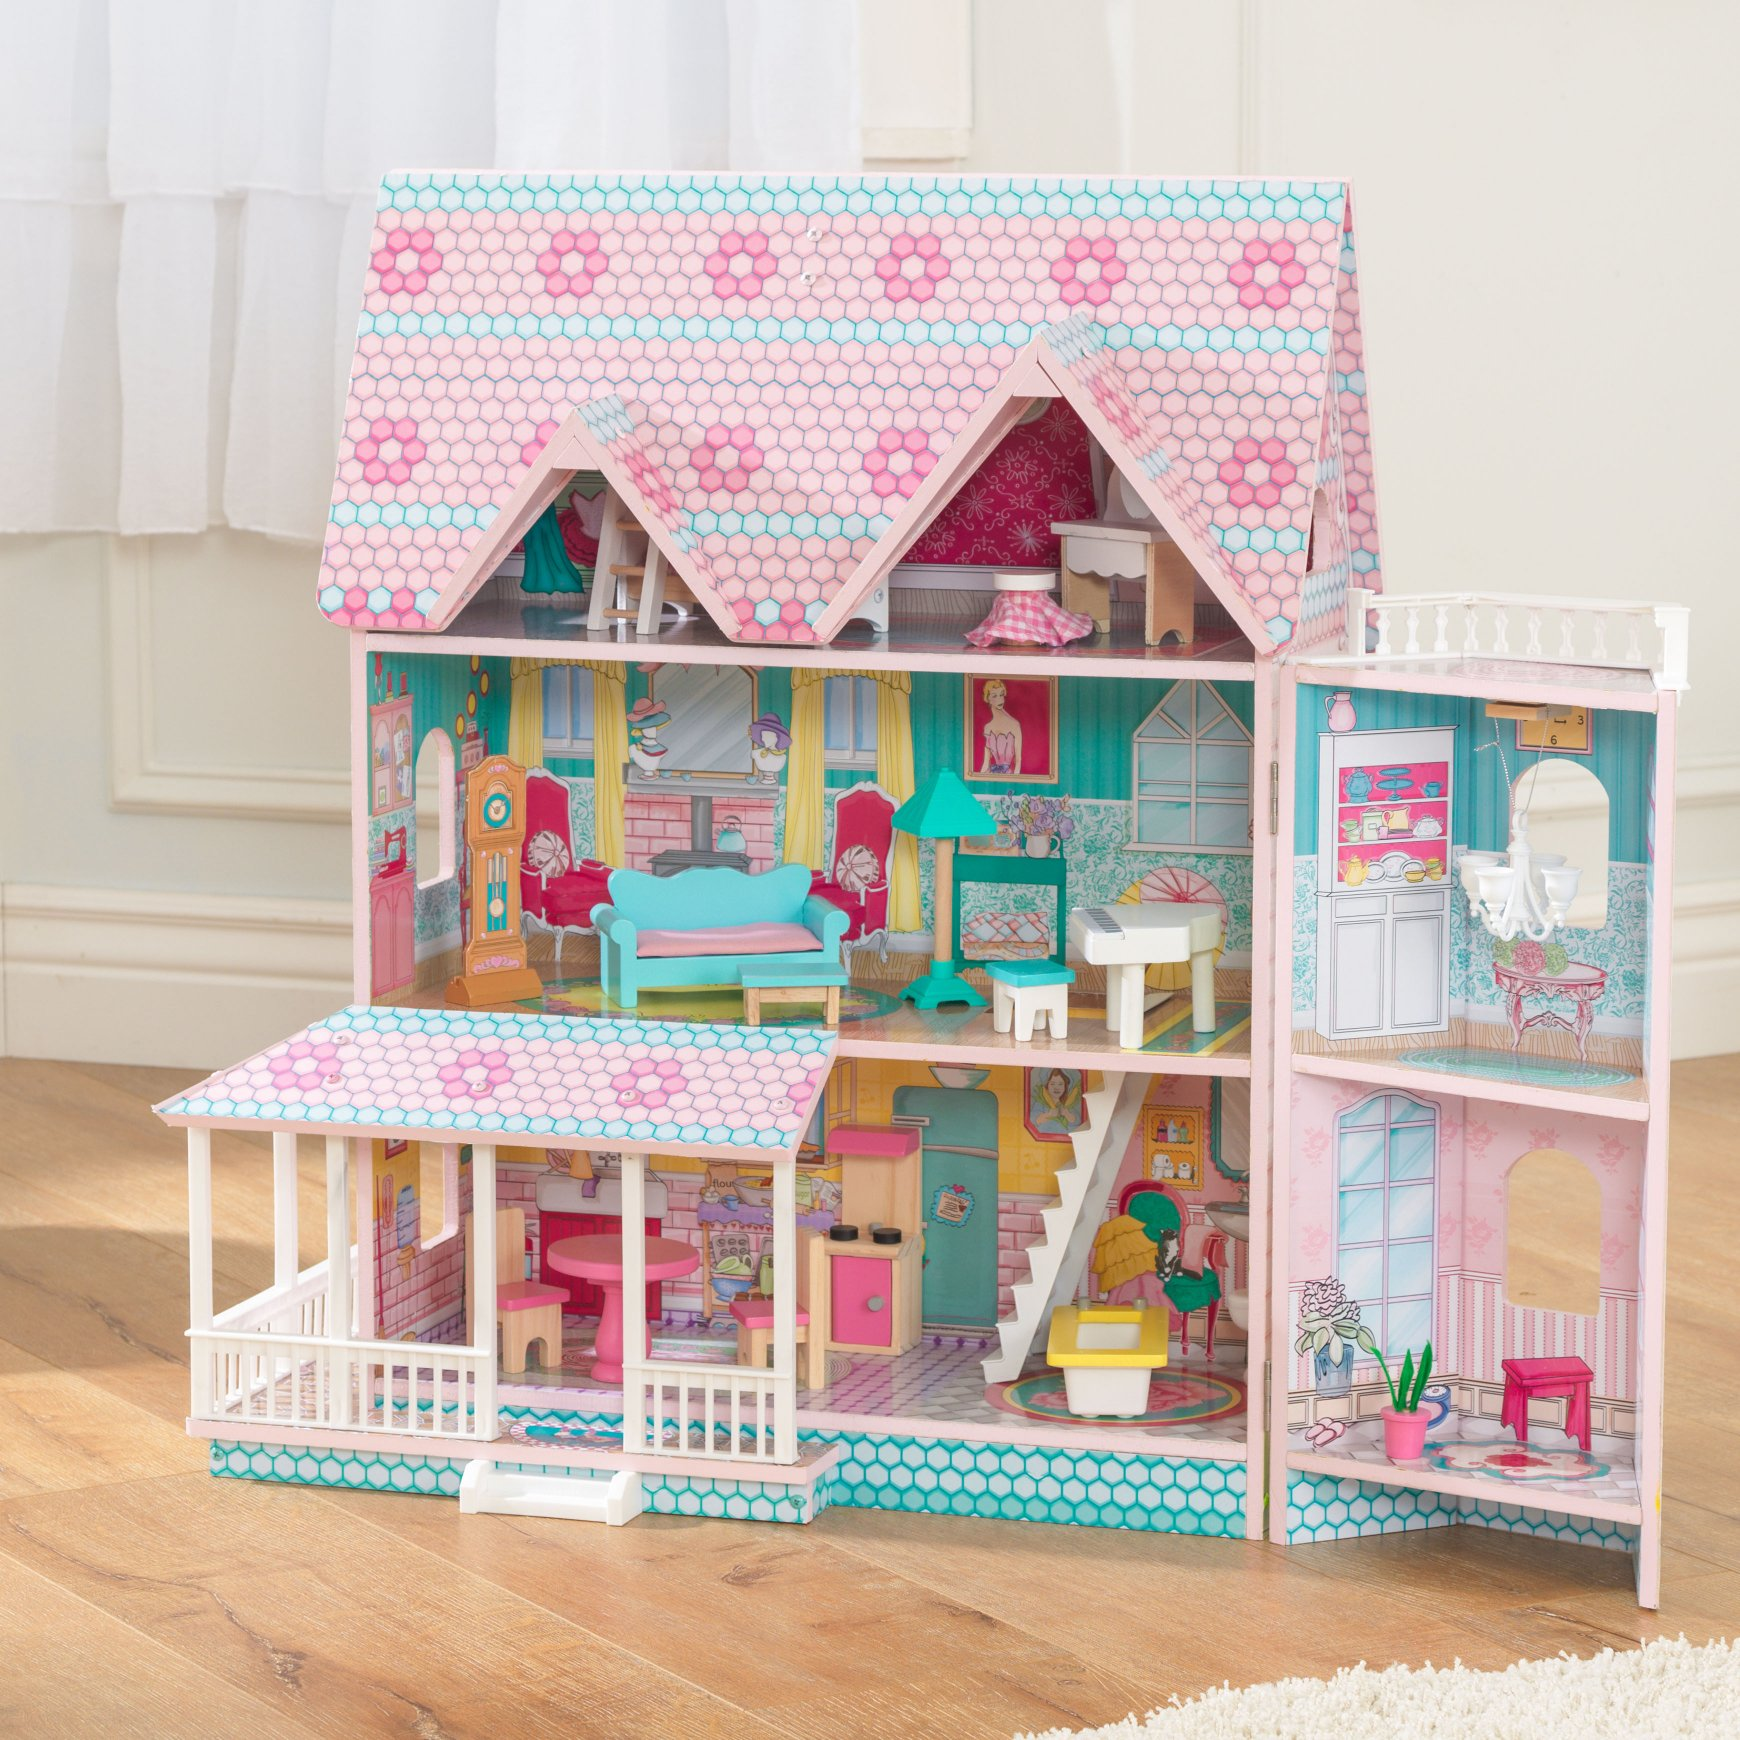 Abbey Manor Dolls House For Kids Children Girls Pretend Play Toys Wooden